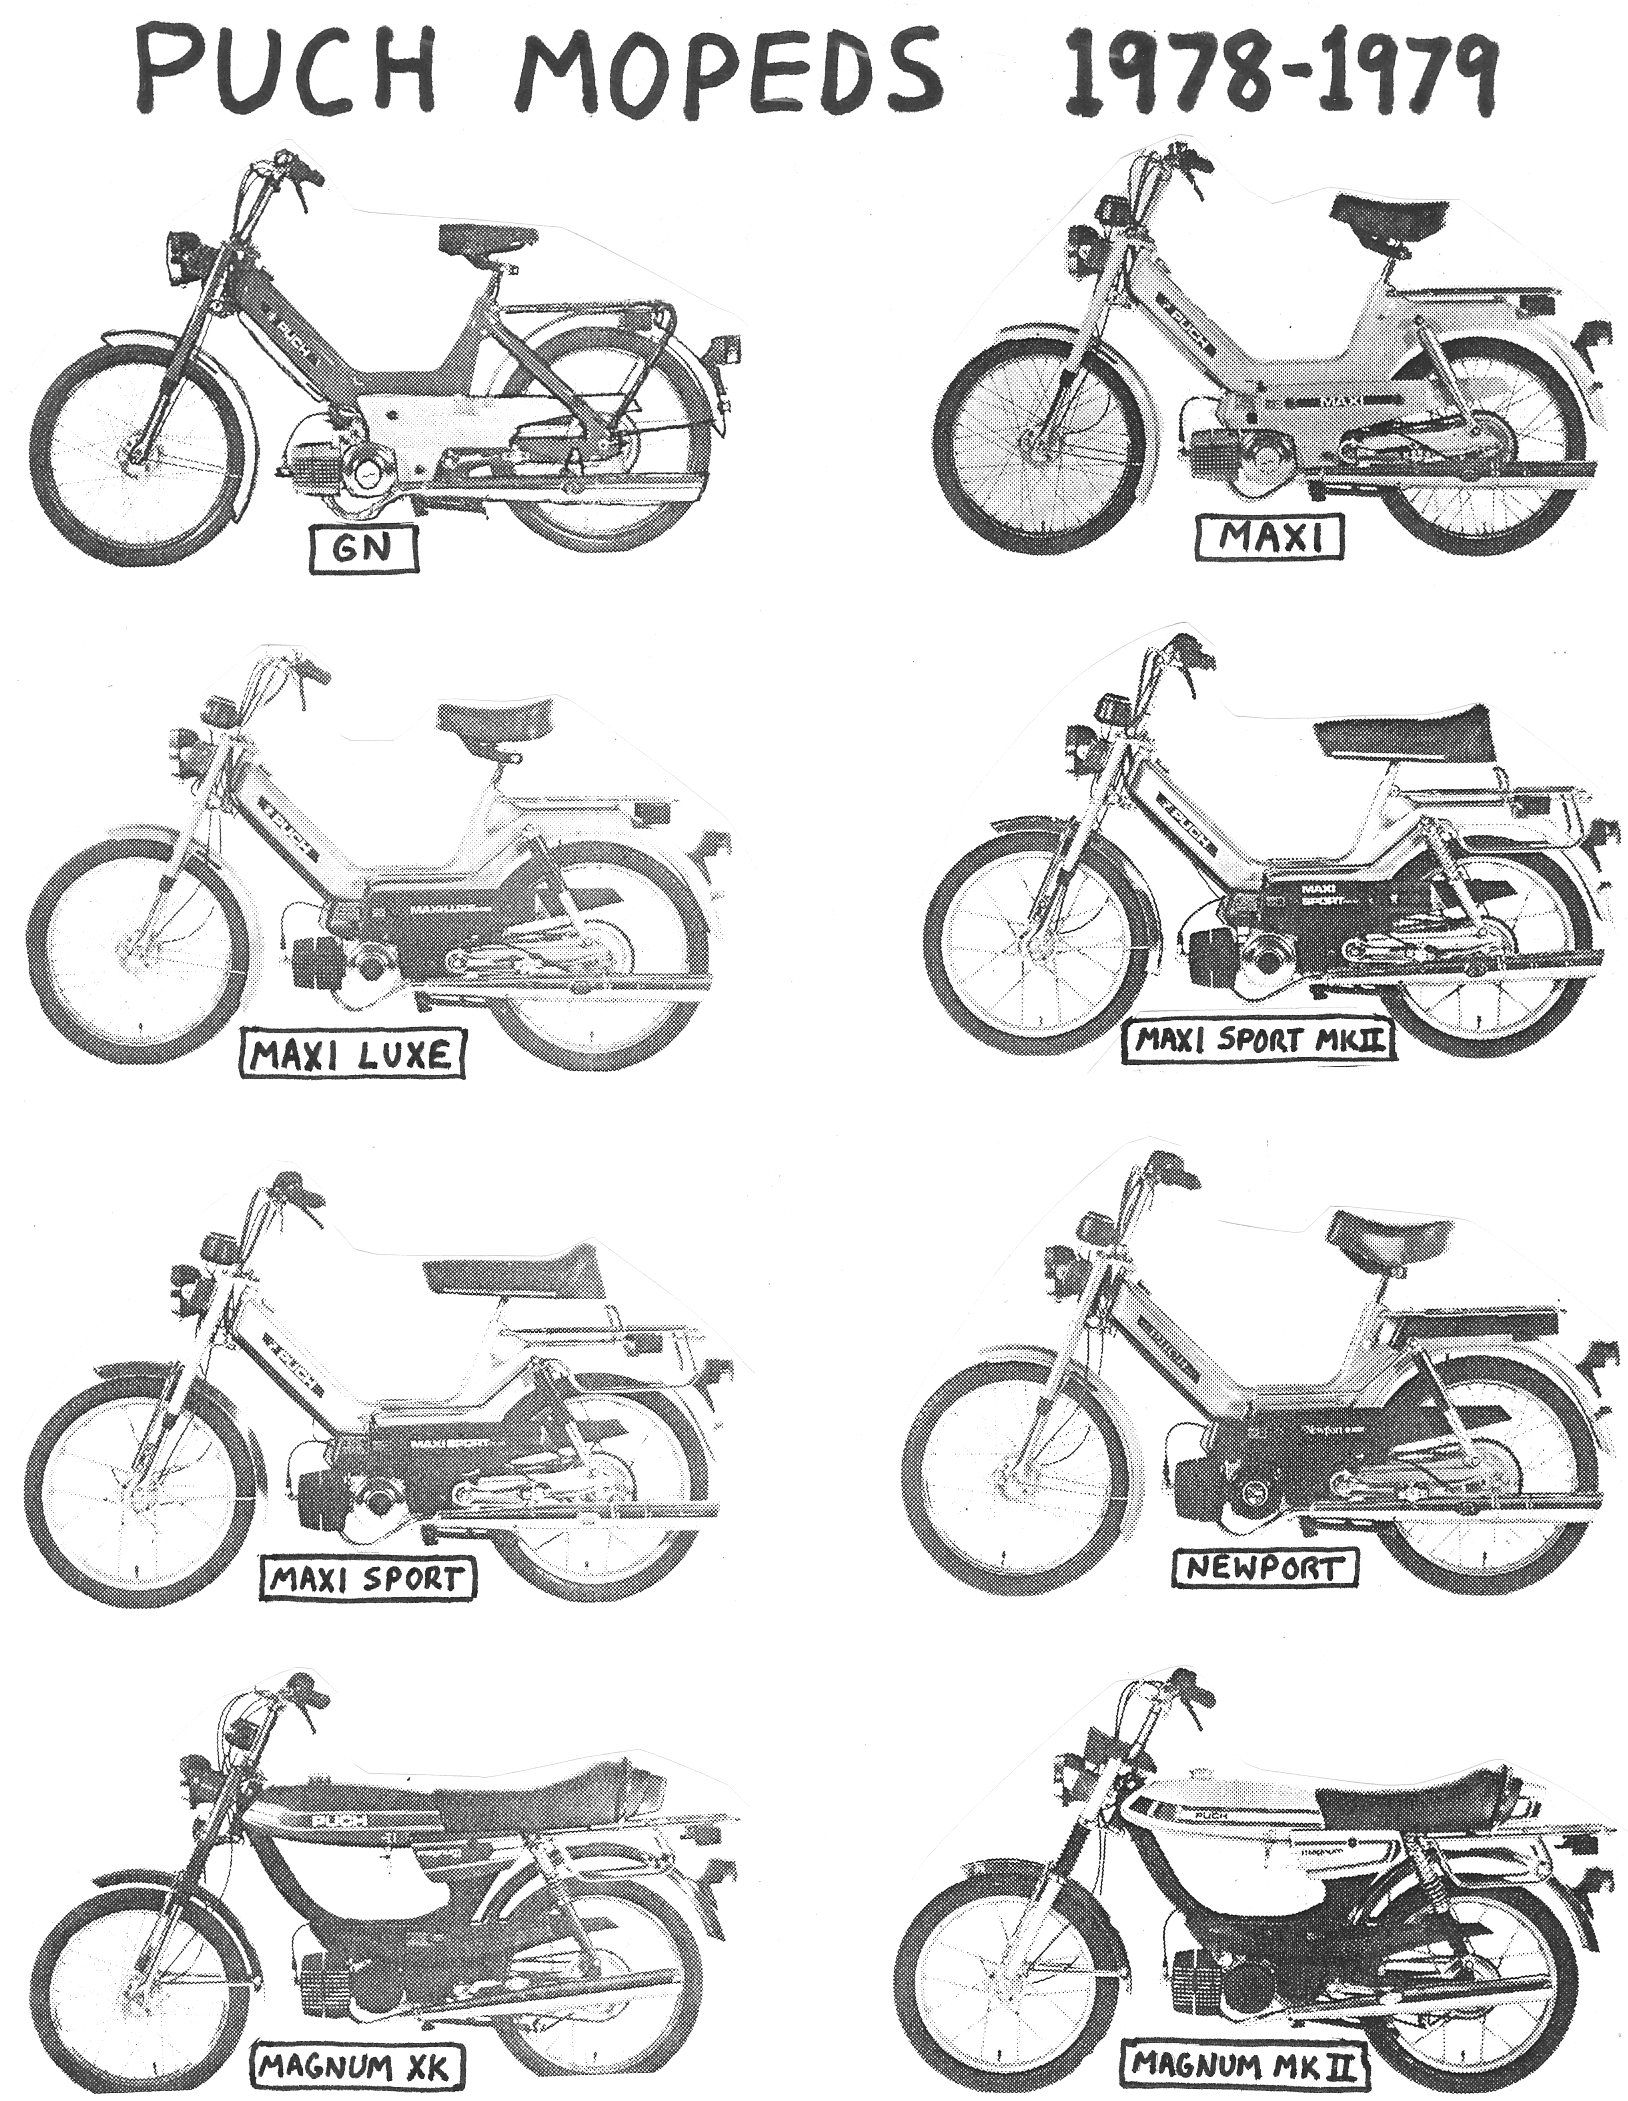 Puch Moped Taxonomy With Images